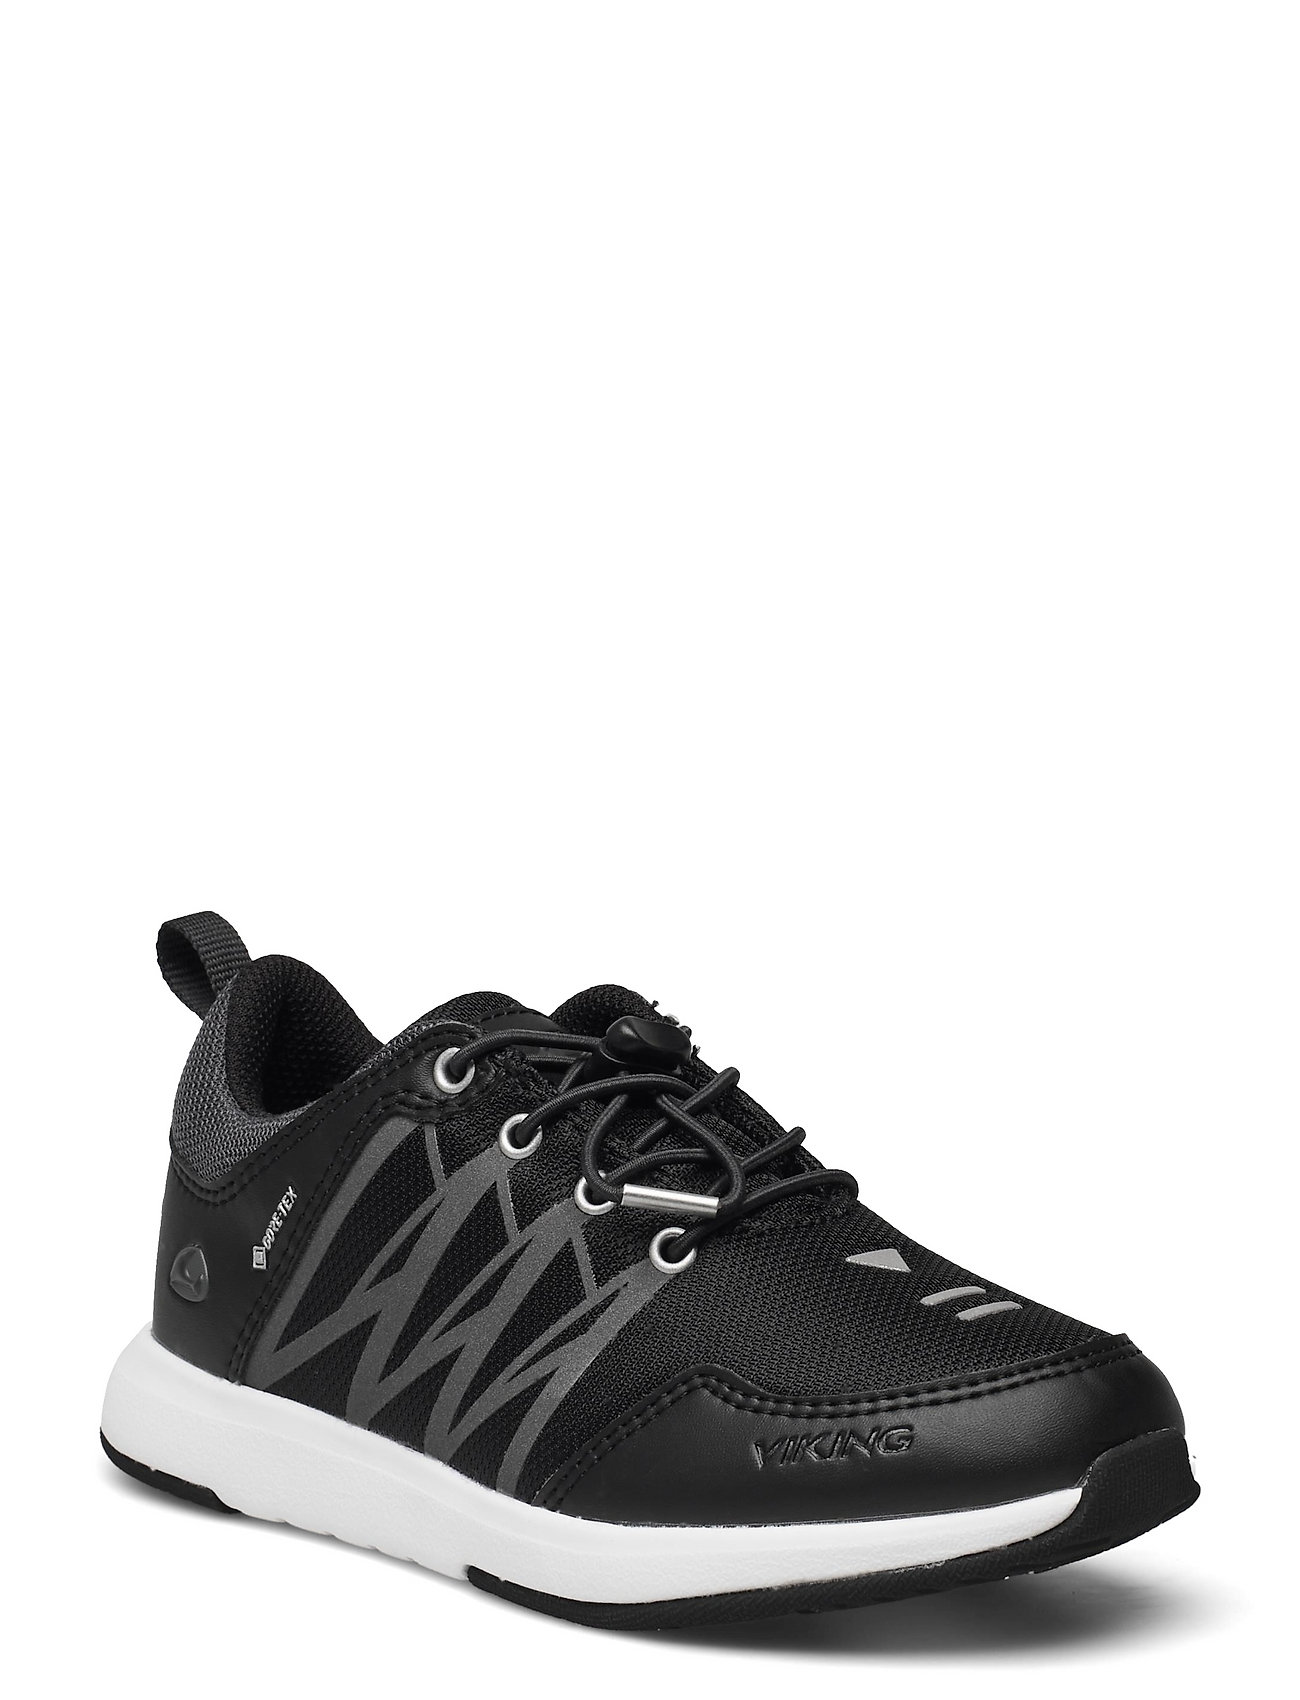 Oppsal Low Gtx R Shoes Sports Shoes Running/training Shoes Sort Viking